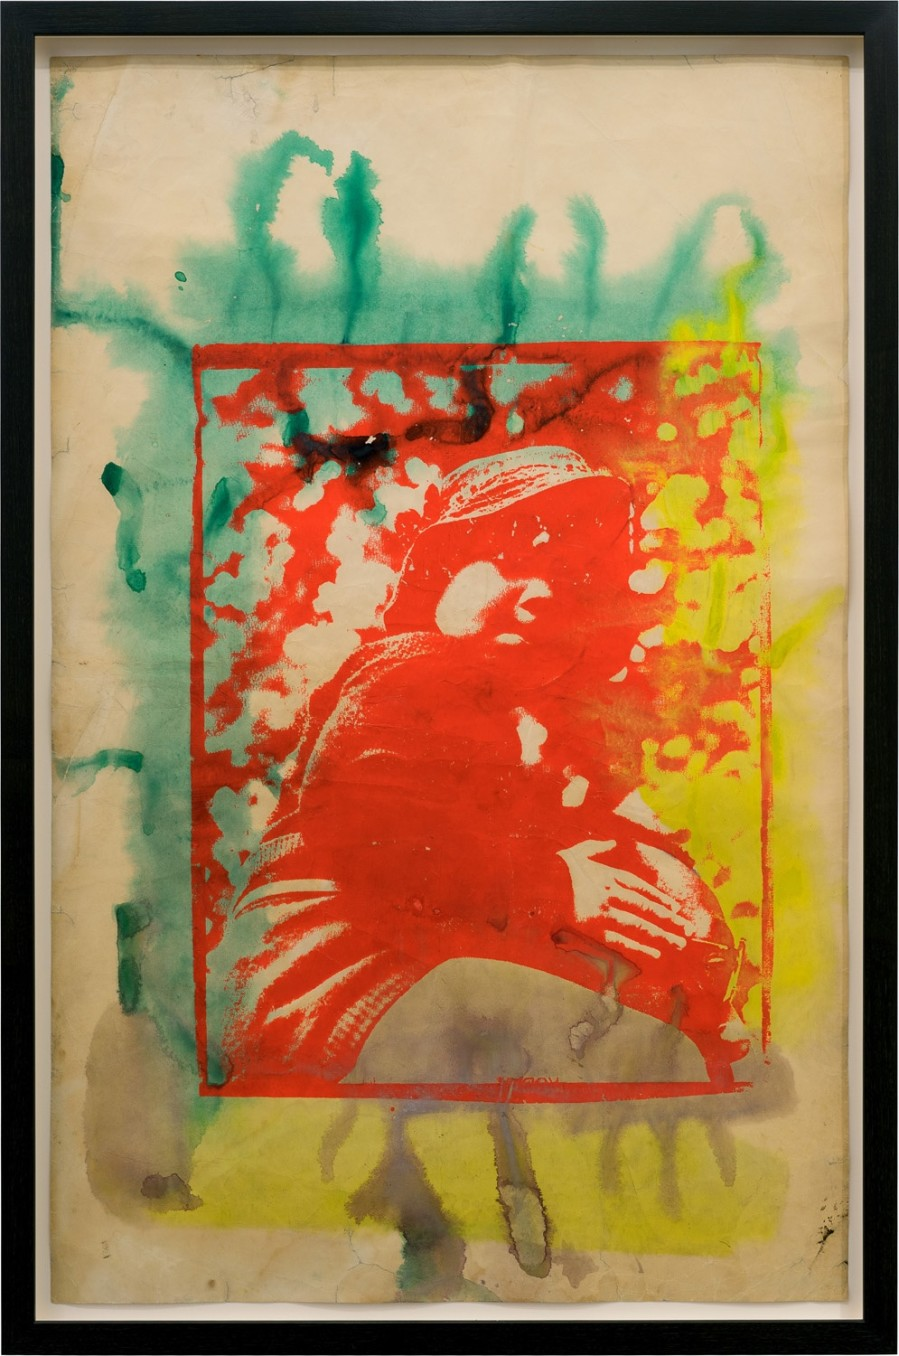 Frank Bowling, His Mother's Call, 1967, Screenprint and acrylic paint on paper, 58.2 x 90.8 cm, 22 7/8 x 35 3/4 in, Framed: 98 x 65 x 5.1 cm, 38 5/8 x 25 5/8 x 2 1/8 in